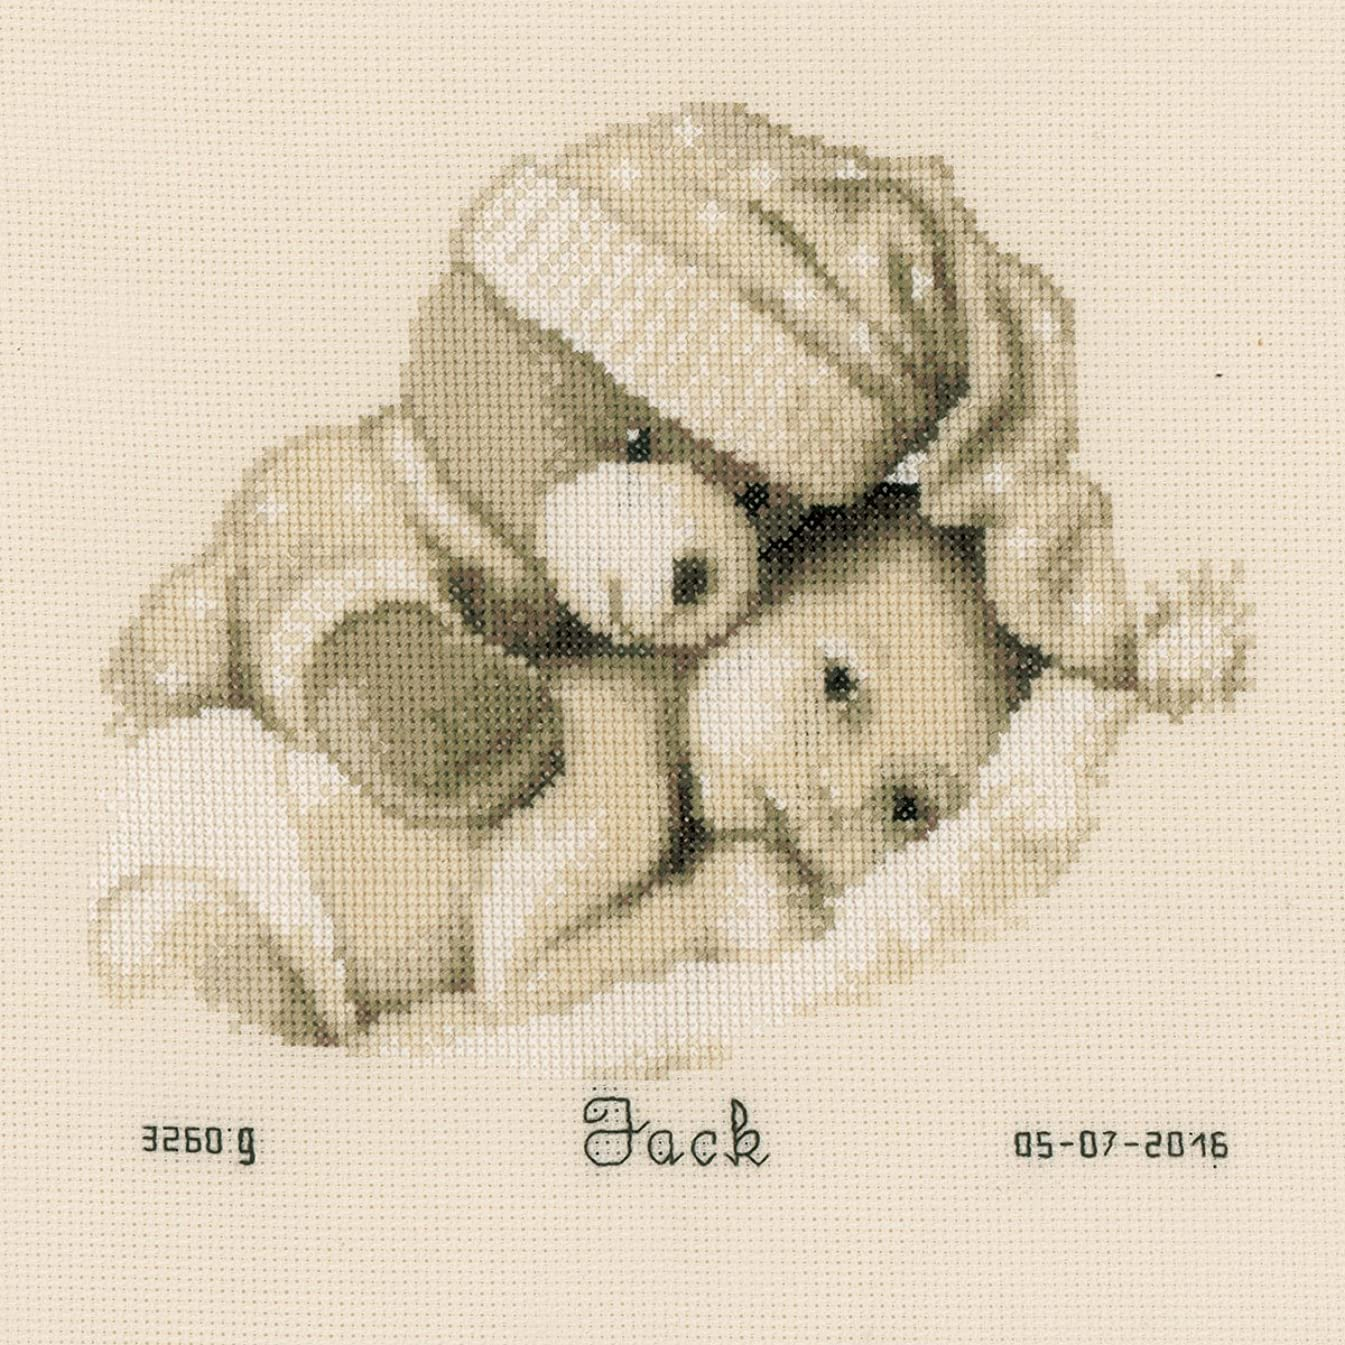 Vervaco 14 Count Baby & Teddy Birth Record On Aida Counted Cross Stitch Kit, 8.75